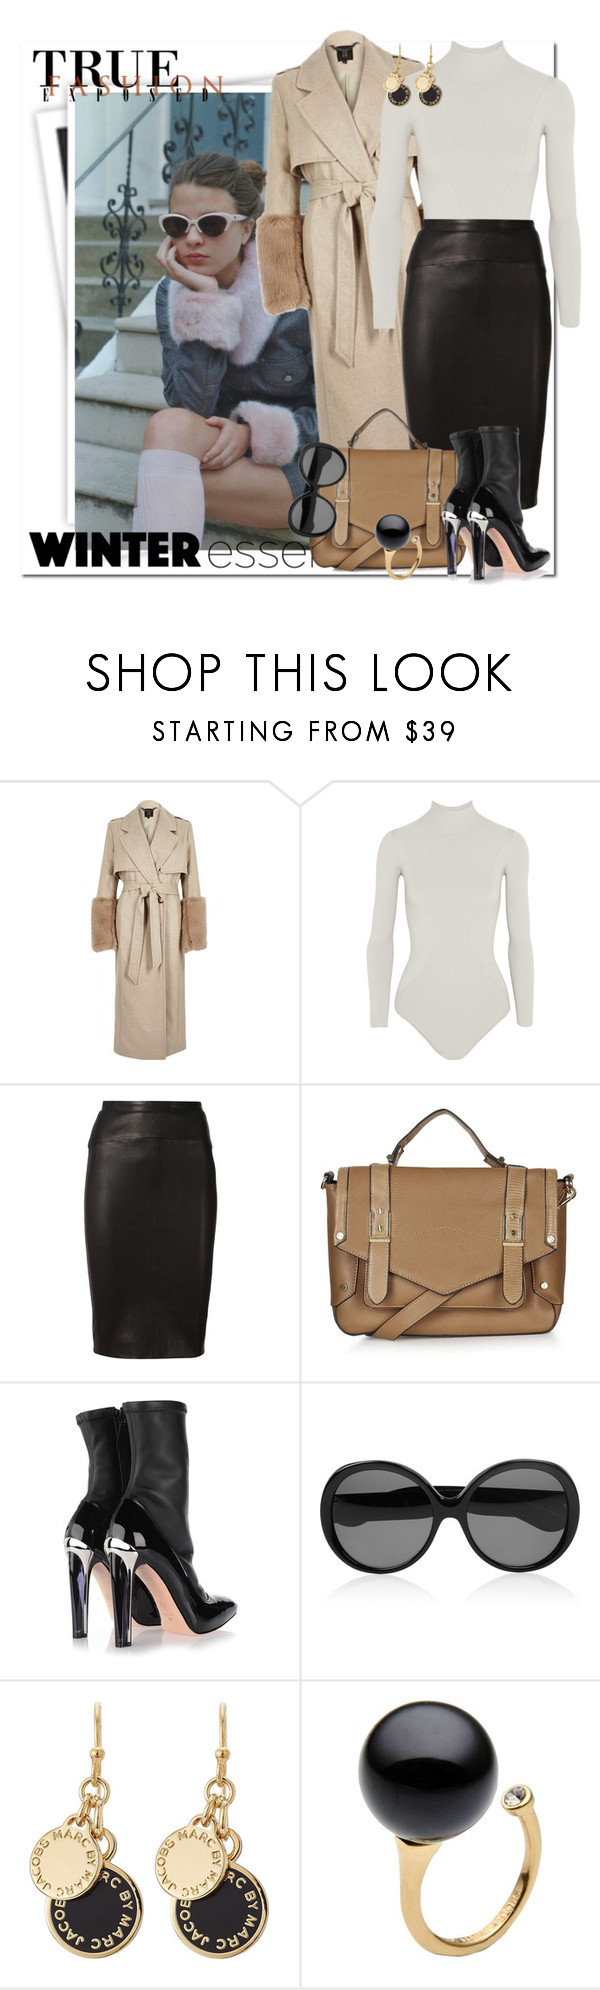 """""""Trendy Girls Rock in Winter"""" by msmith801 ❤ liked on Polyvore featuring GALA, River Island, Body Editions, Narciso Rodriguez, Topshop, Alexander McQueen, Yves Saint Laurent, Marc by Marc Jacobs and winteressentials"""